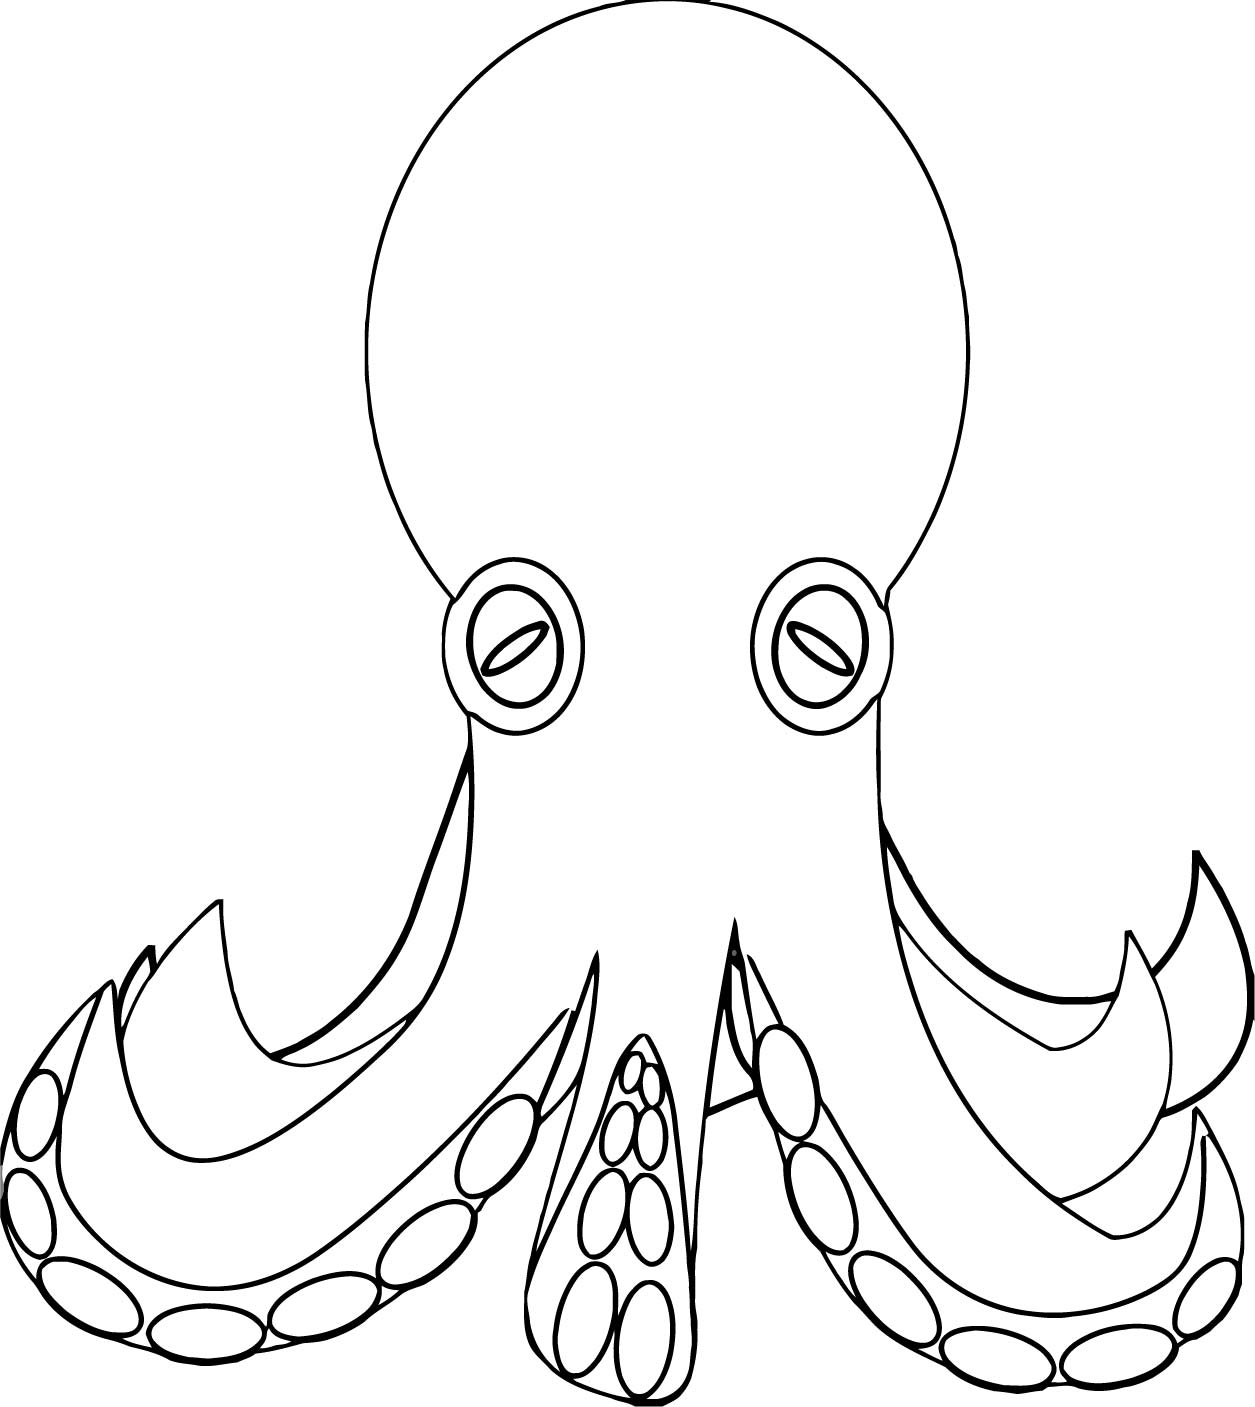 Wecoloringpage.com   Free And Printable Coloring Page